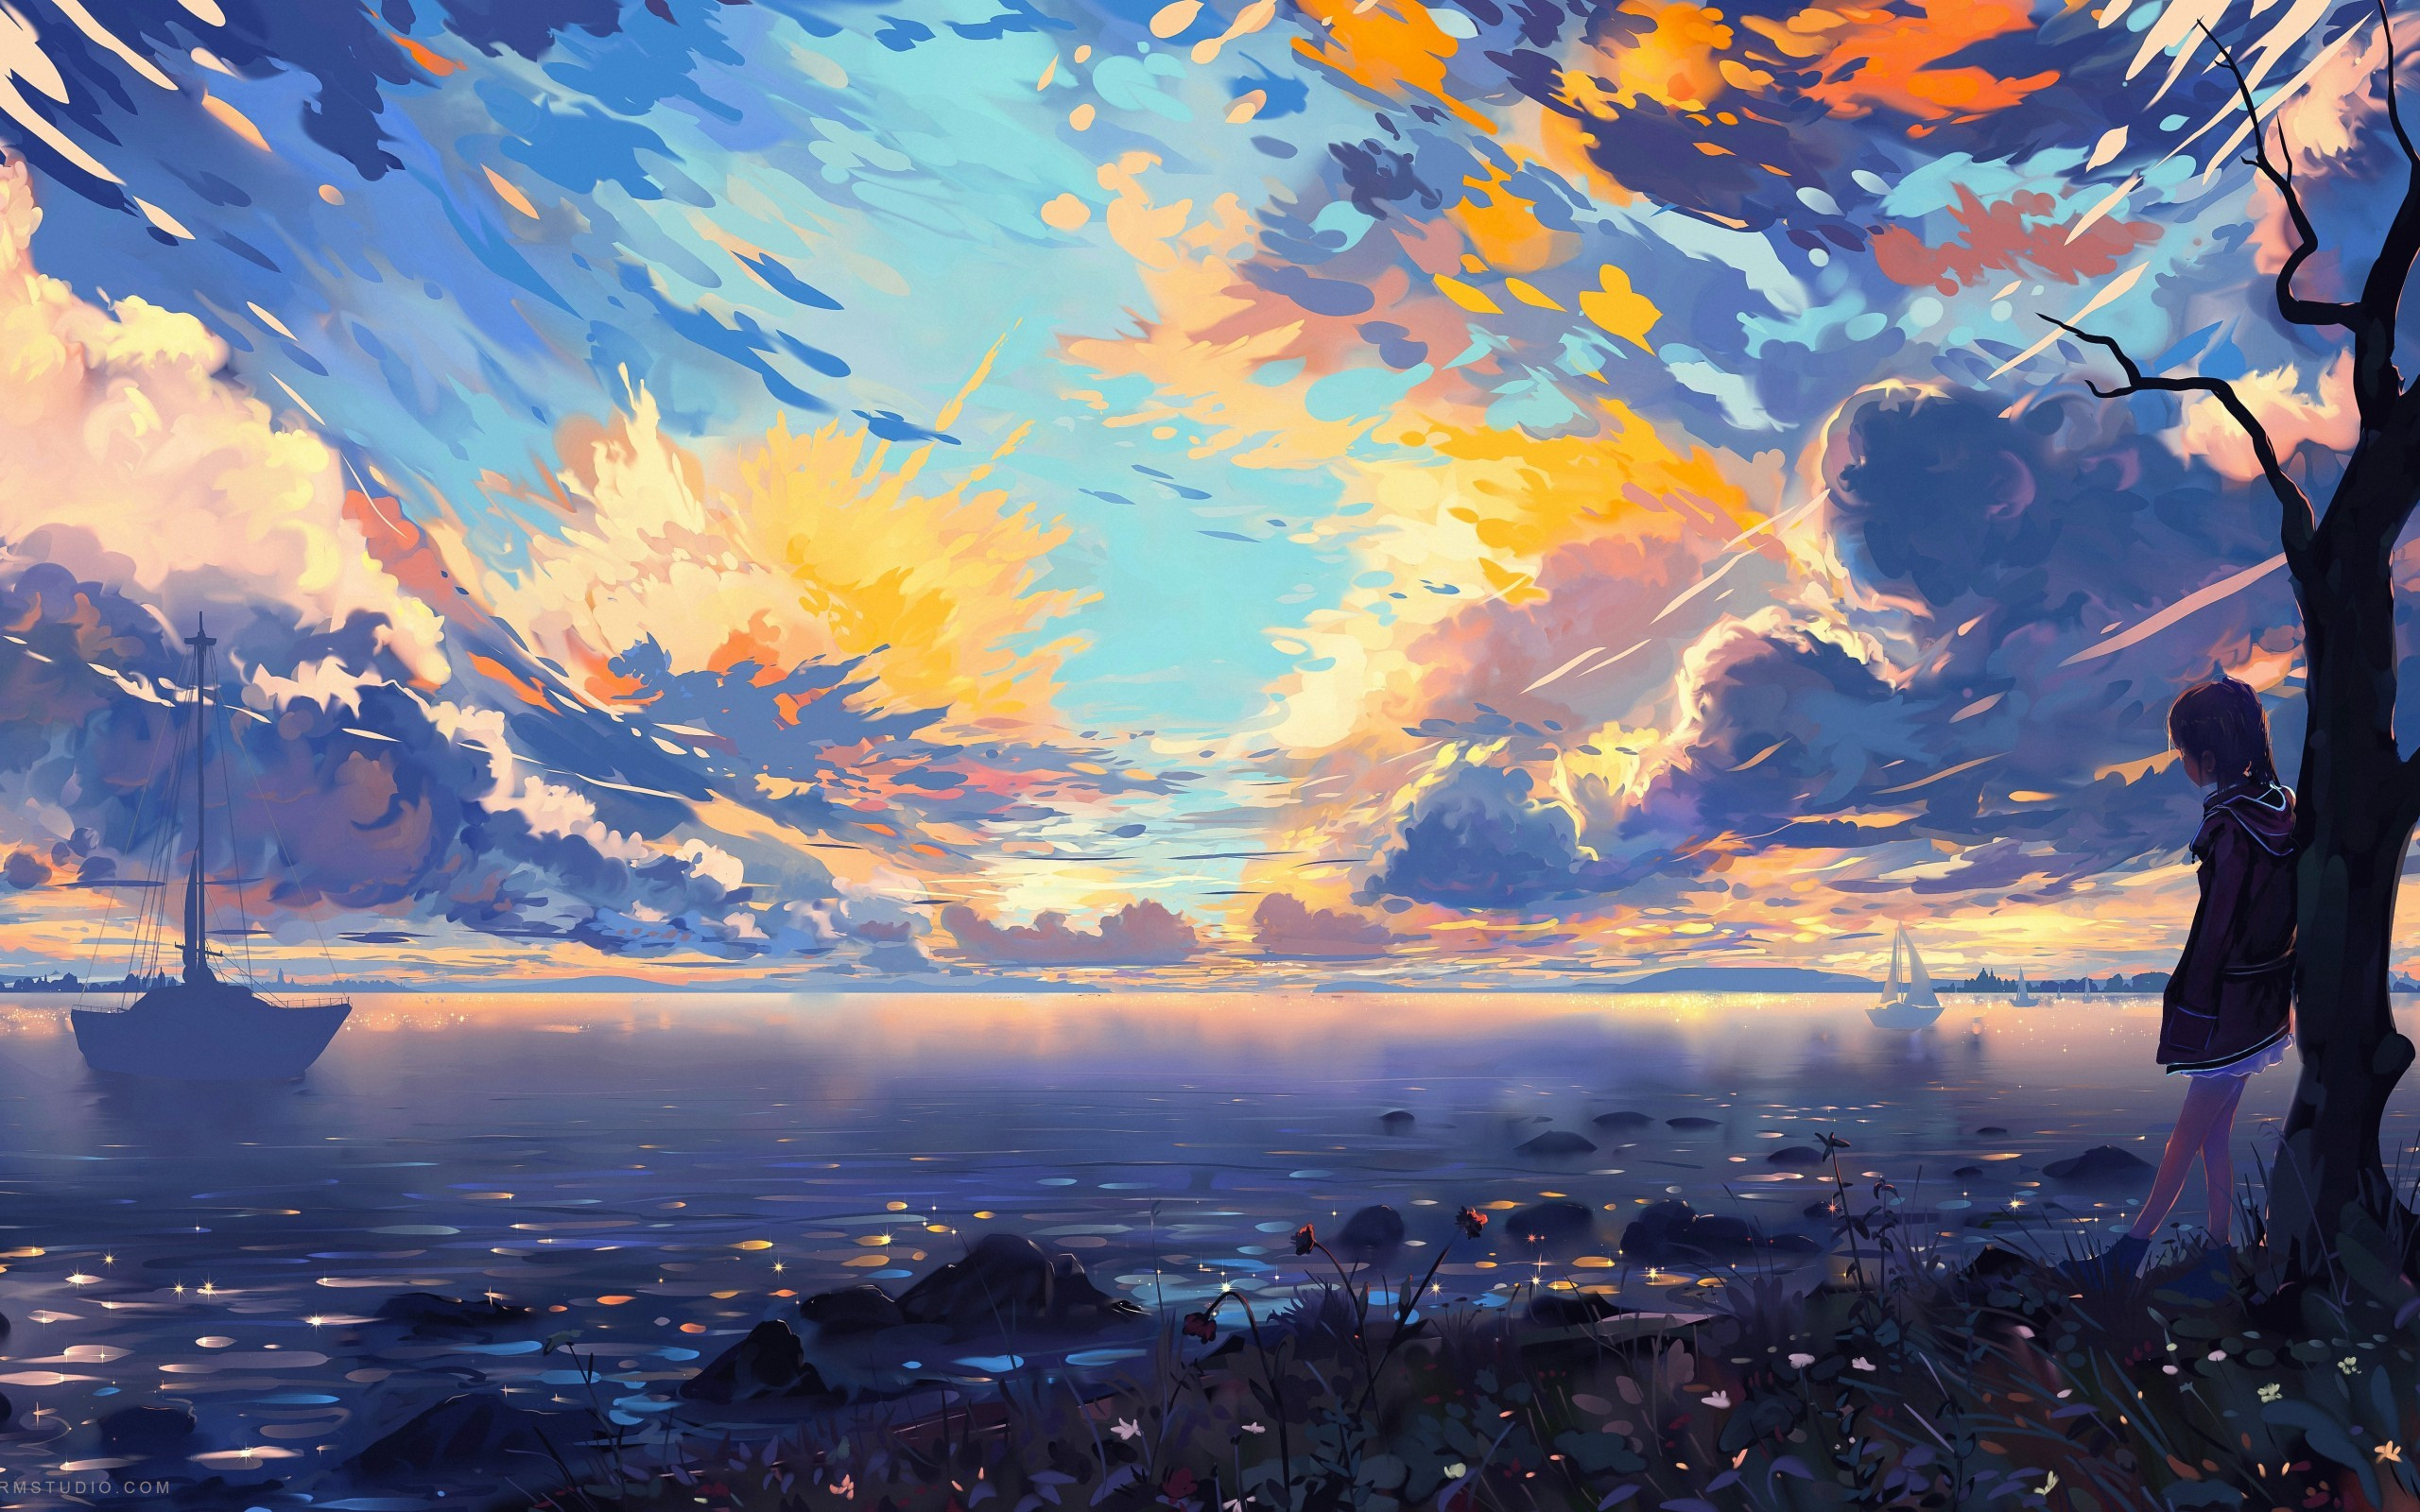 Best ideas about Anime Landscape Wallpaper . Save or Pin Download Anime Landscape Sea Ships Colorful Now.